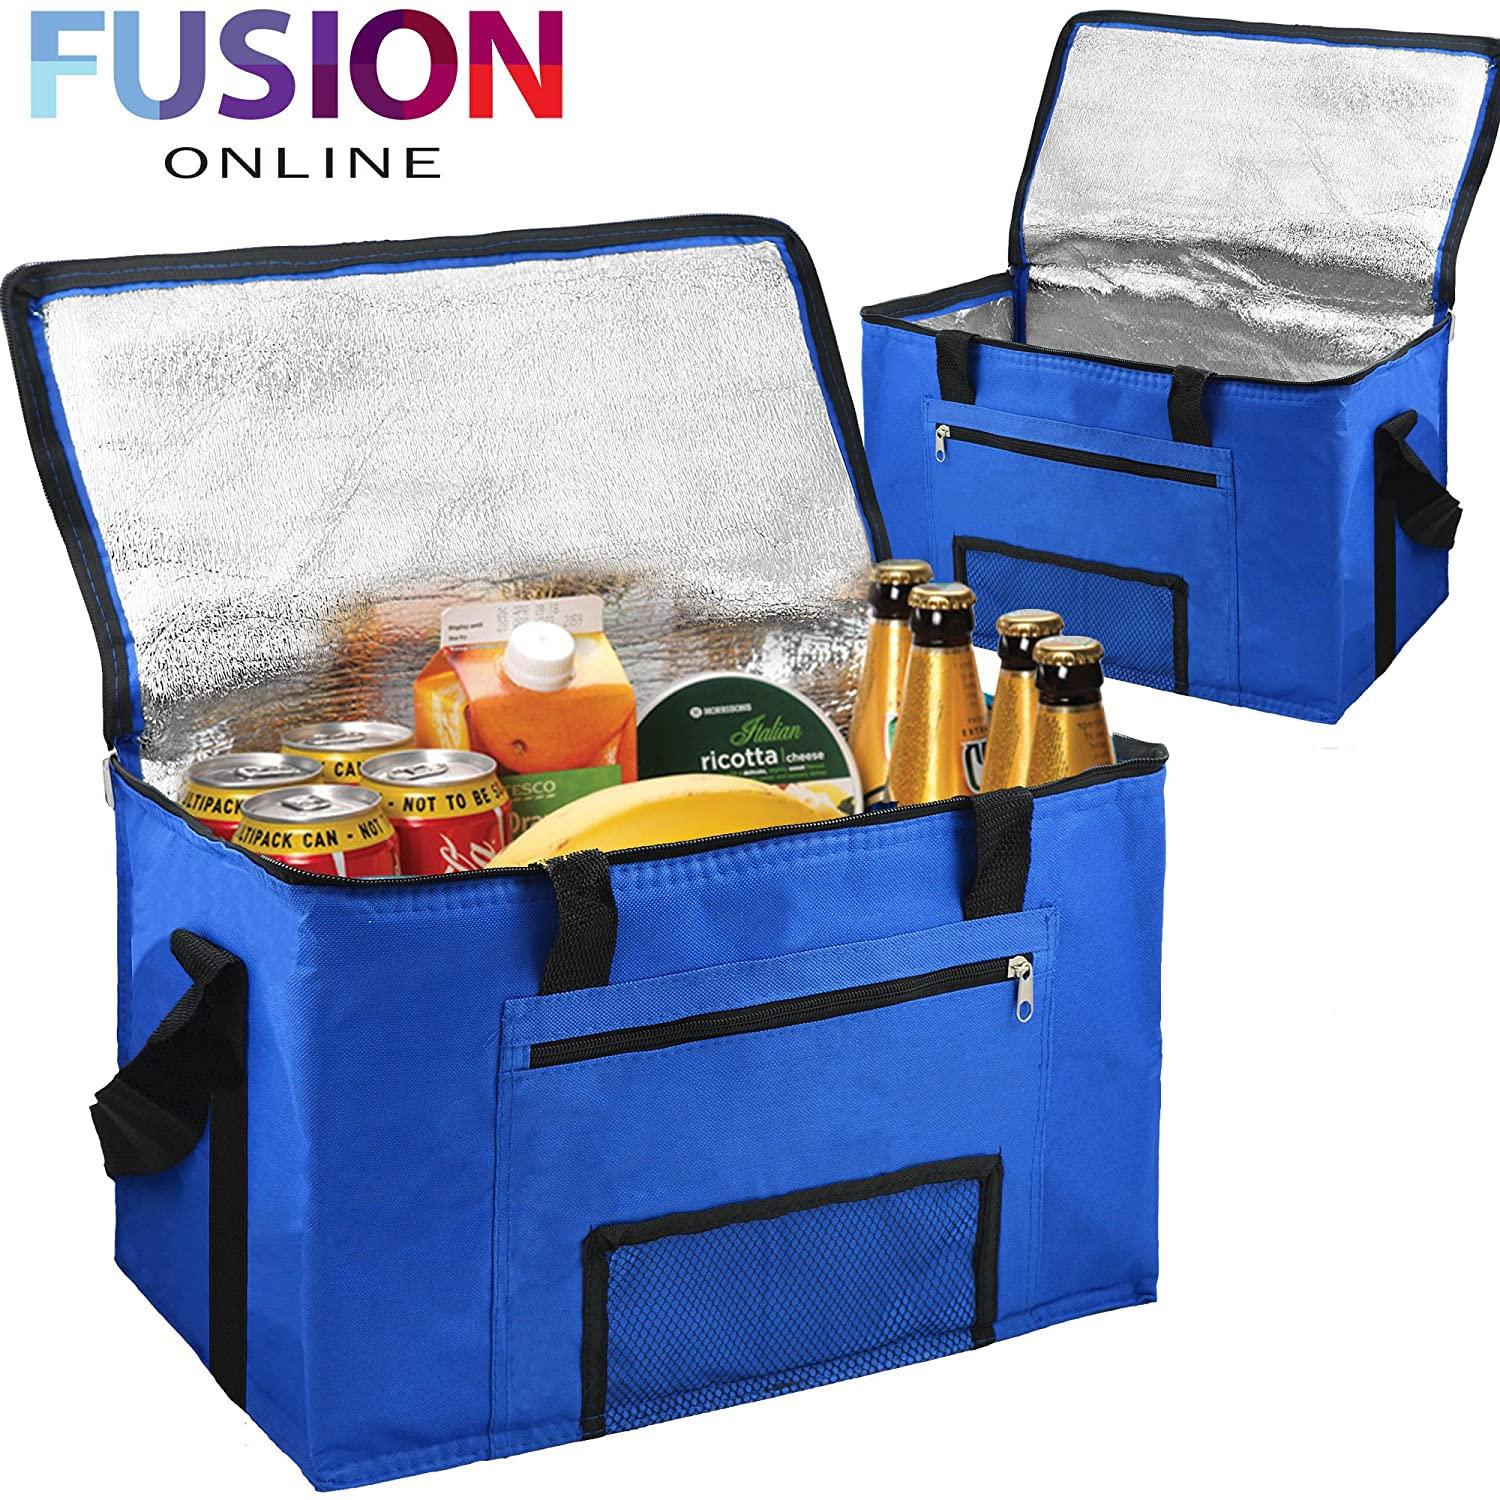 28L EXTRA LARGE COOLING COOLER COOL BAG BOX PICNIC CAMPING FOOD ICE DRINK LUNCH Evelyn Living